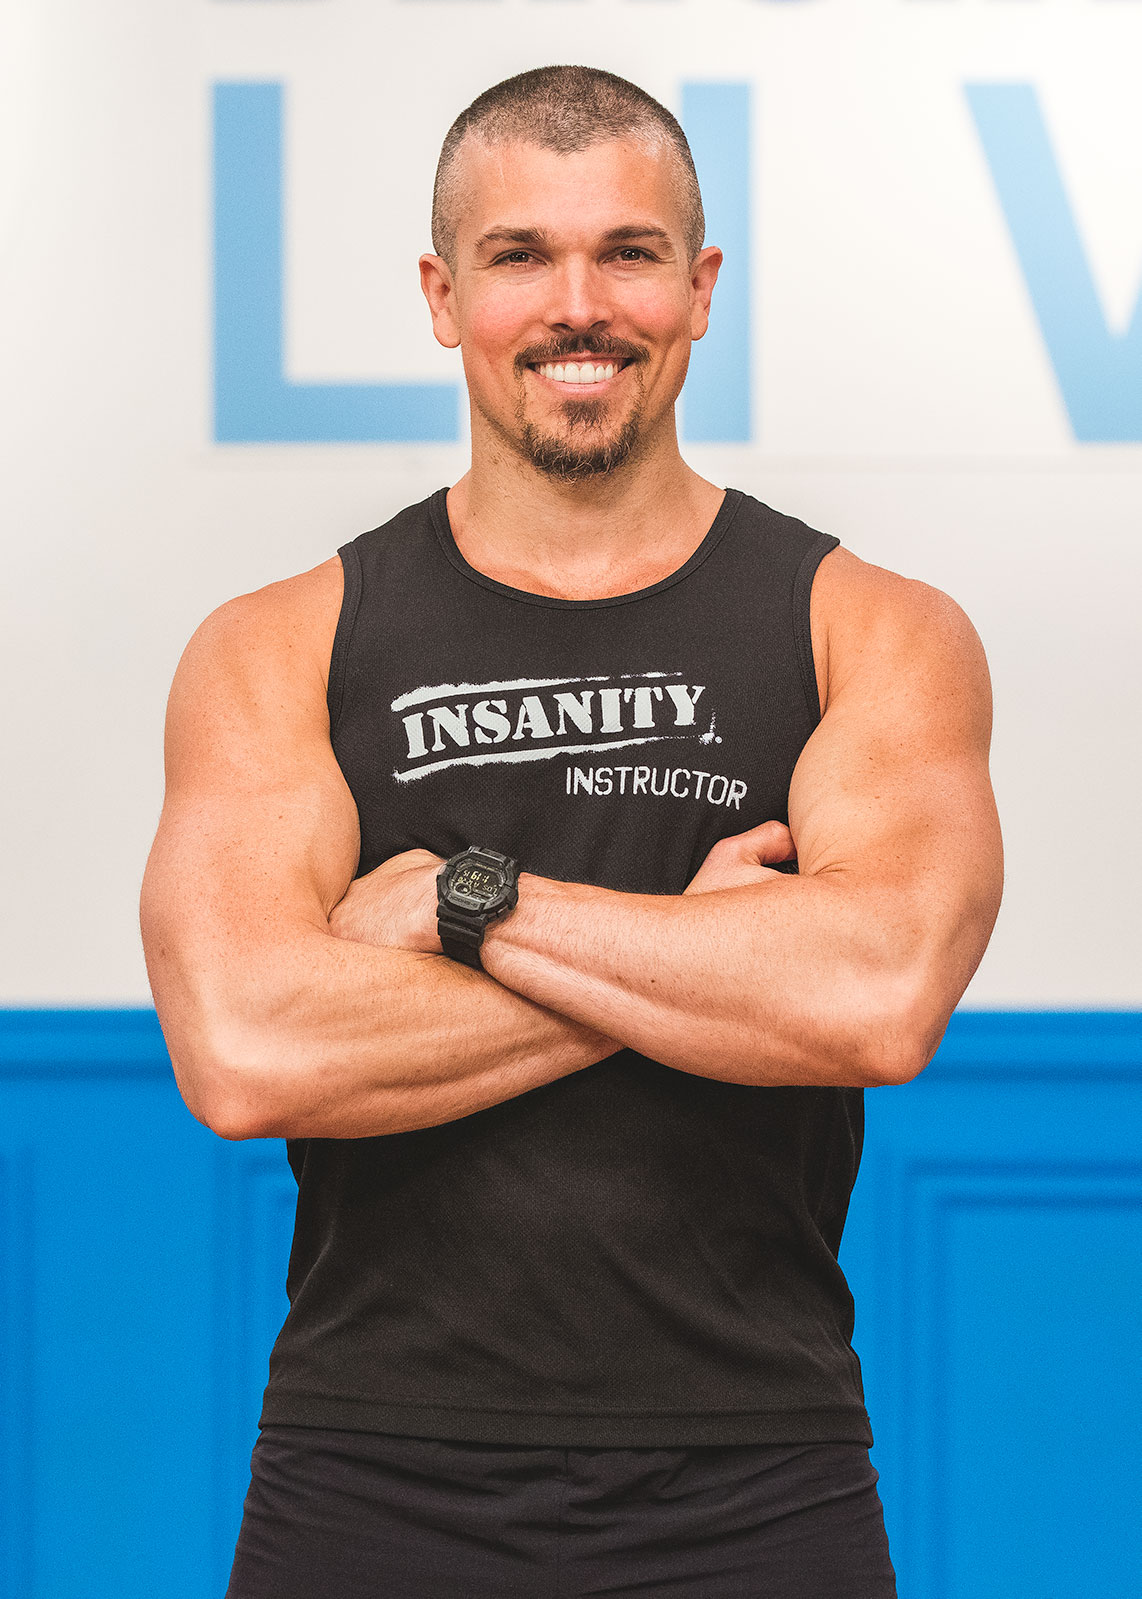 Darren Natoni standing with his arms crossed wearing an INSANITY LIVE tank top in front of a white wall with a blue Beachbody LIVE logo on it